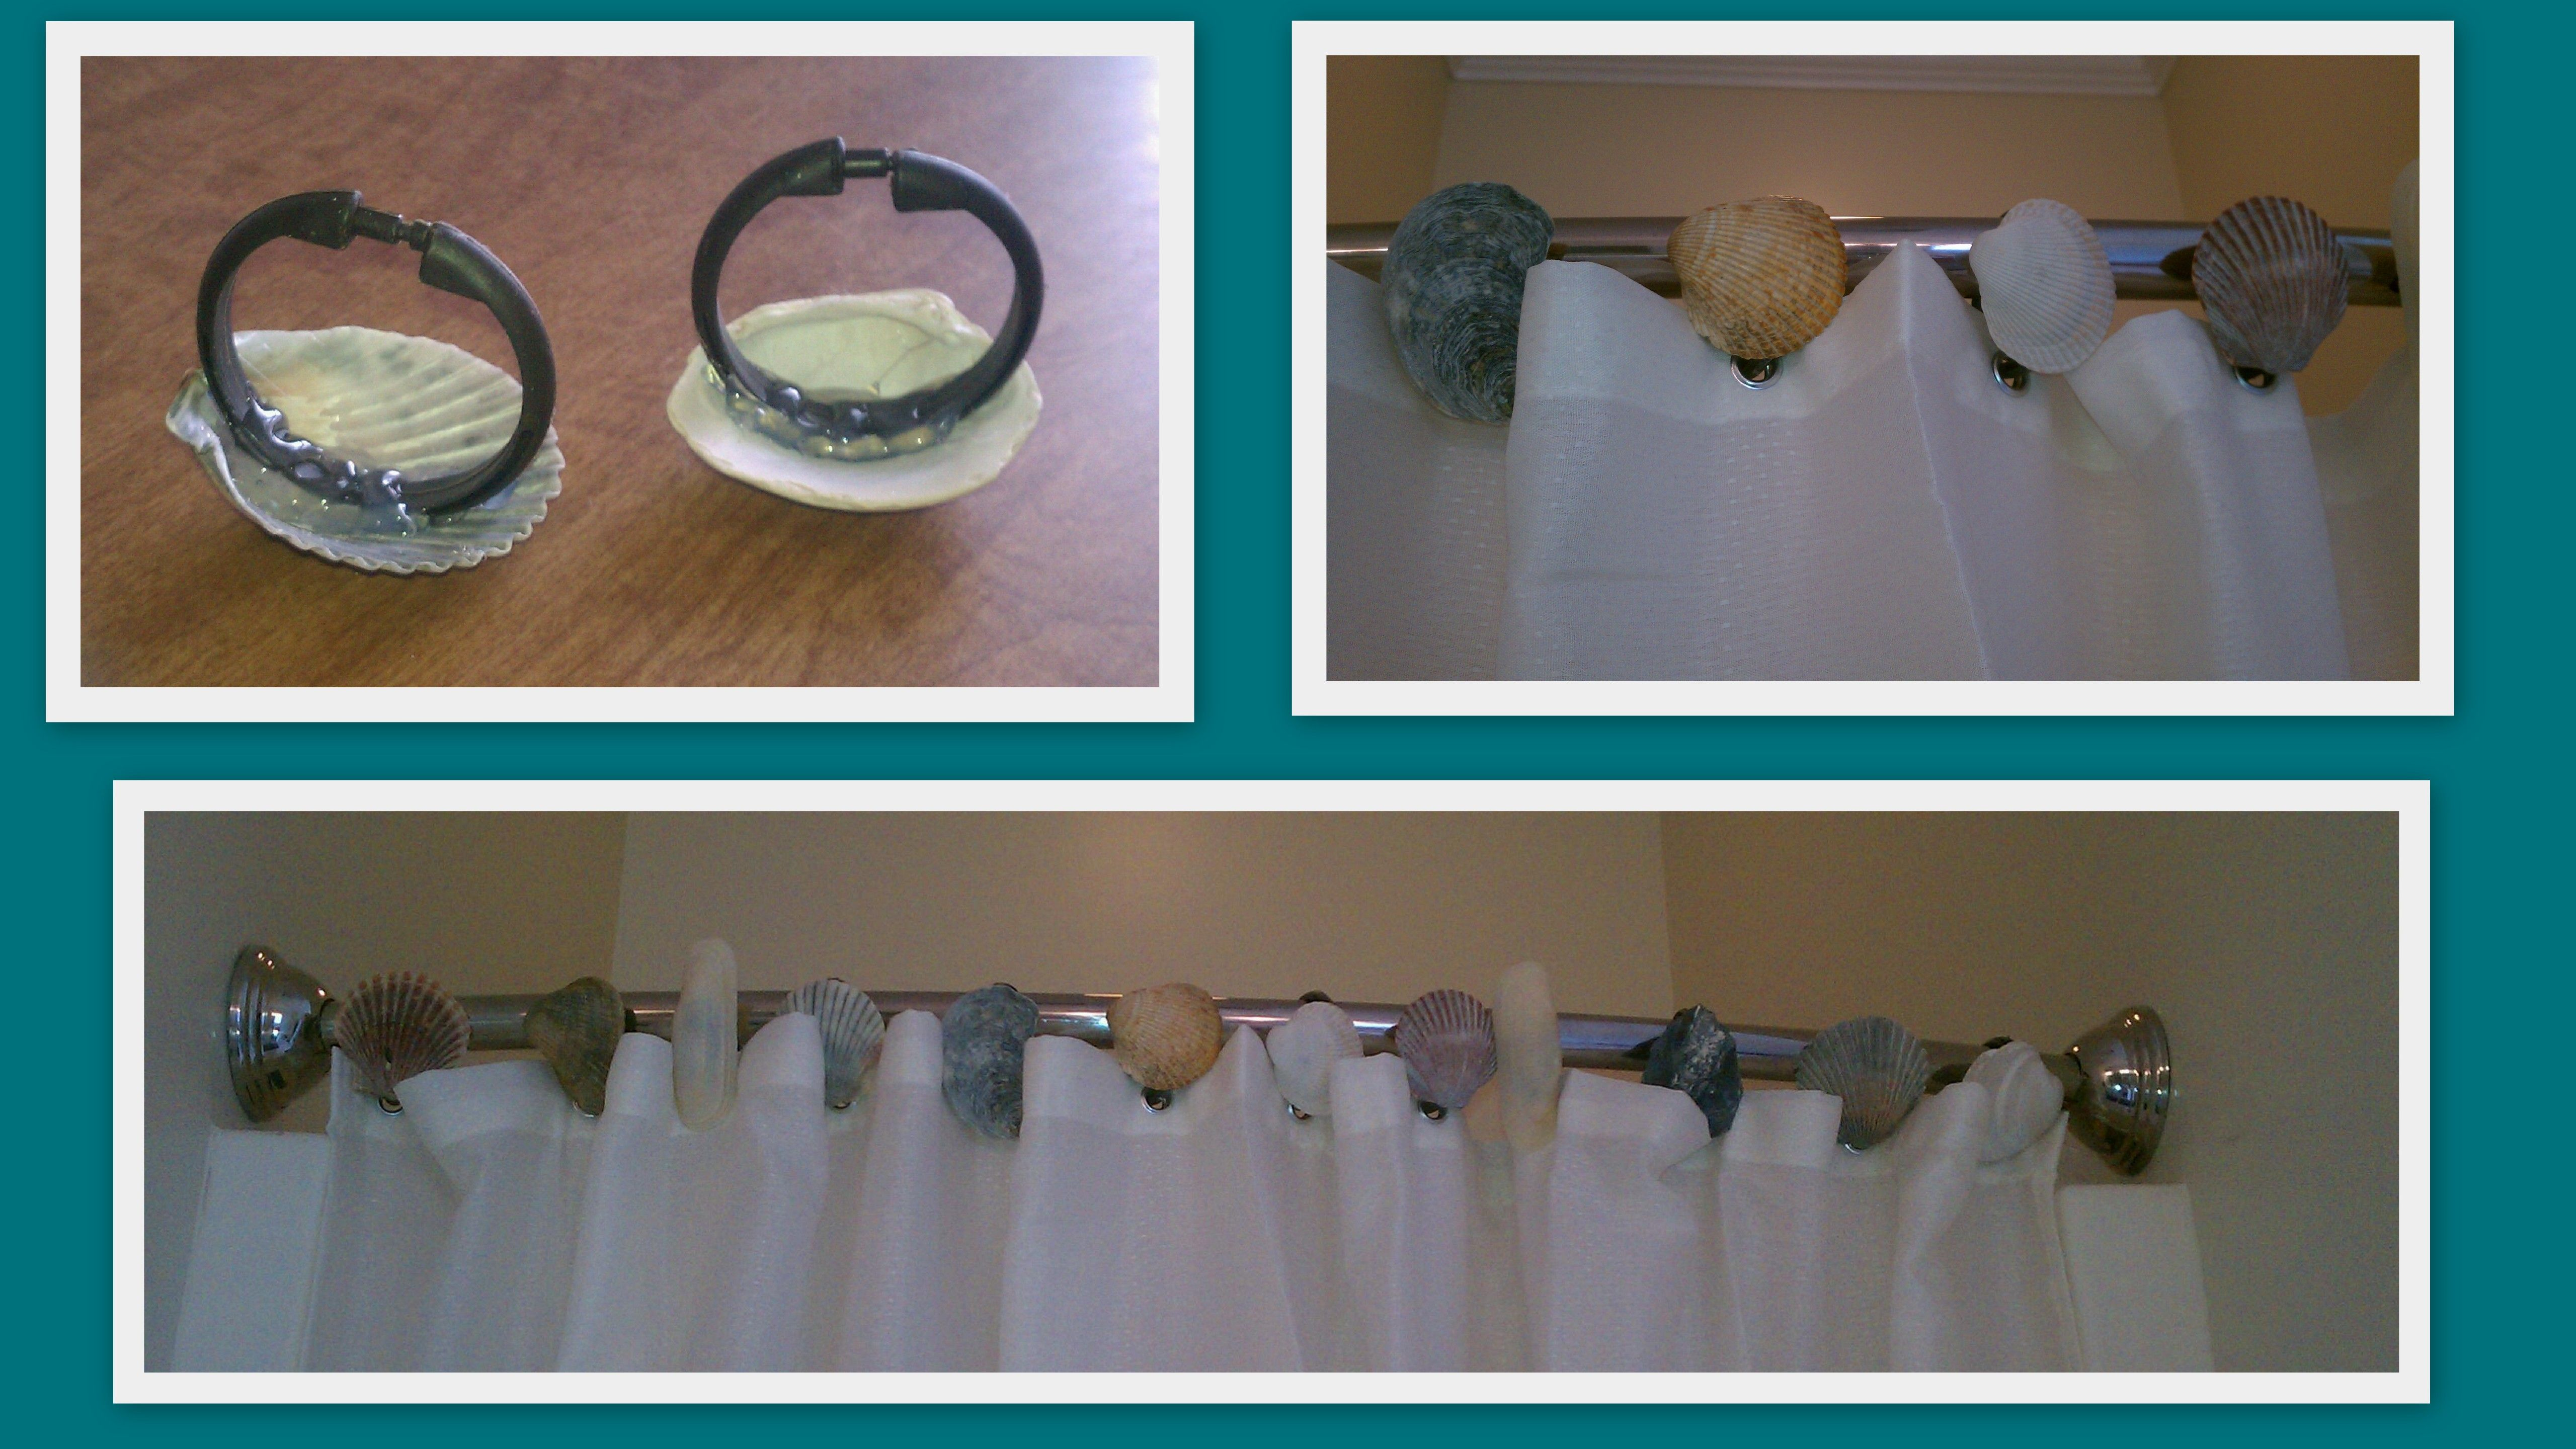 DIY SHELL SHOWER CURTAIN RINGS Use A Hot Glue Gun To Real Shells From Your Beach Trip Dollar Store Shower Curtain Rings Create Beautiful